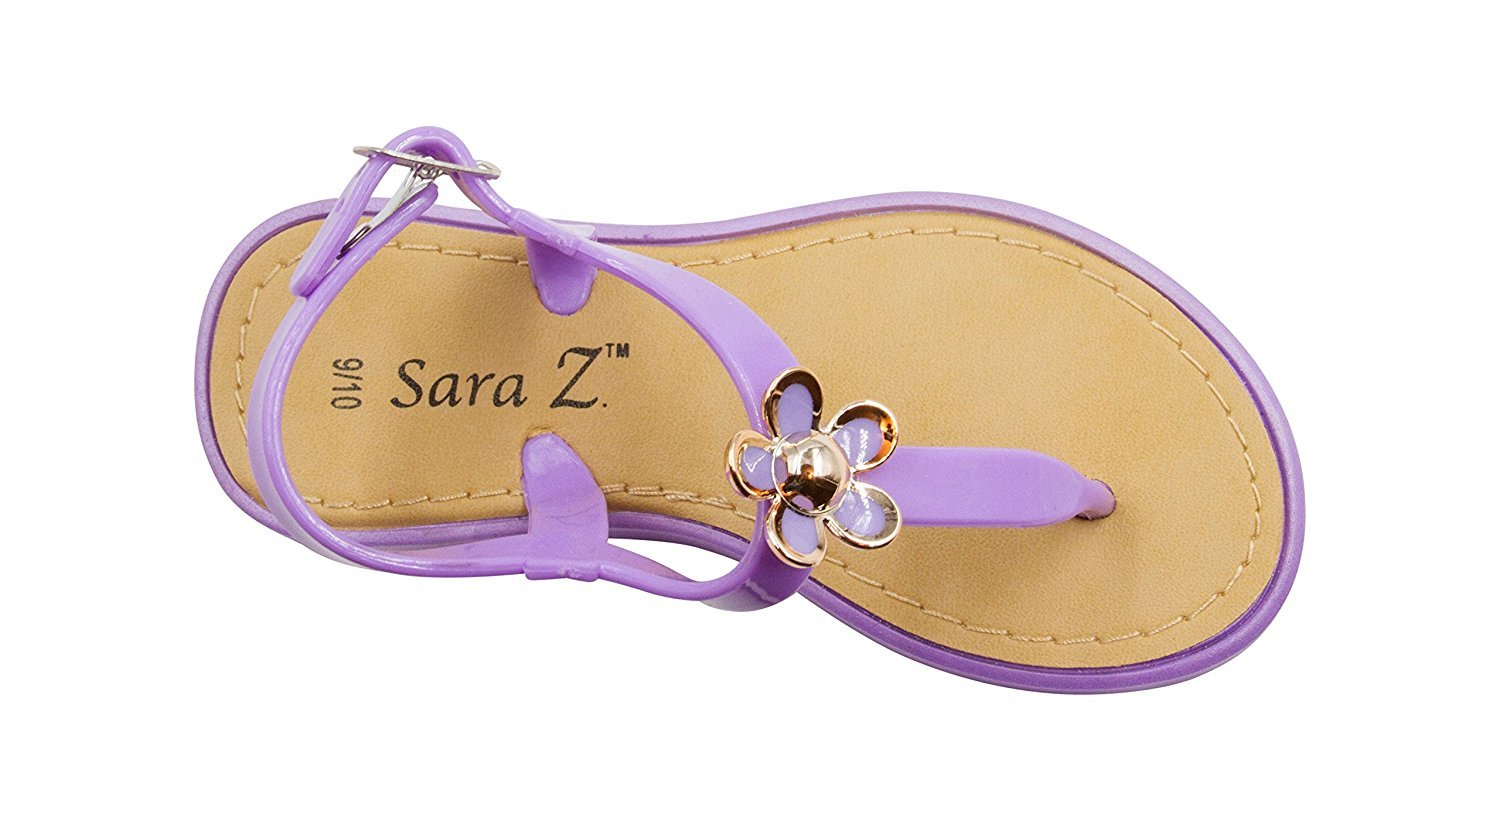 d8ef0e41acbe Sara Z - Sara Z Toddler Girls Jelly Thong Sandals with Gold and Enamel  Flower 11 12 White - Walmart.com